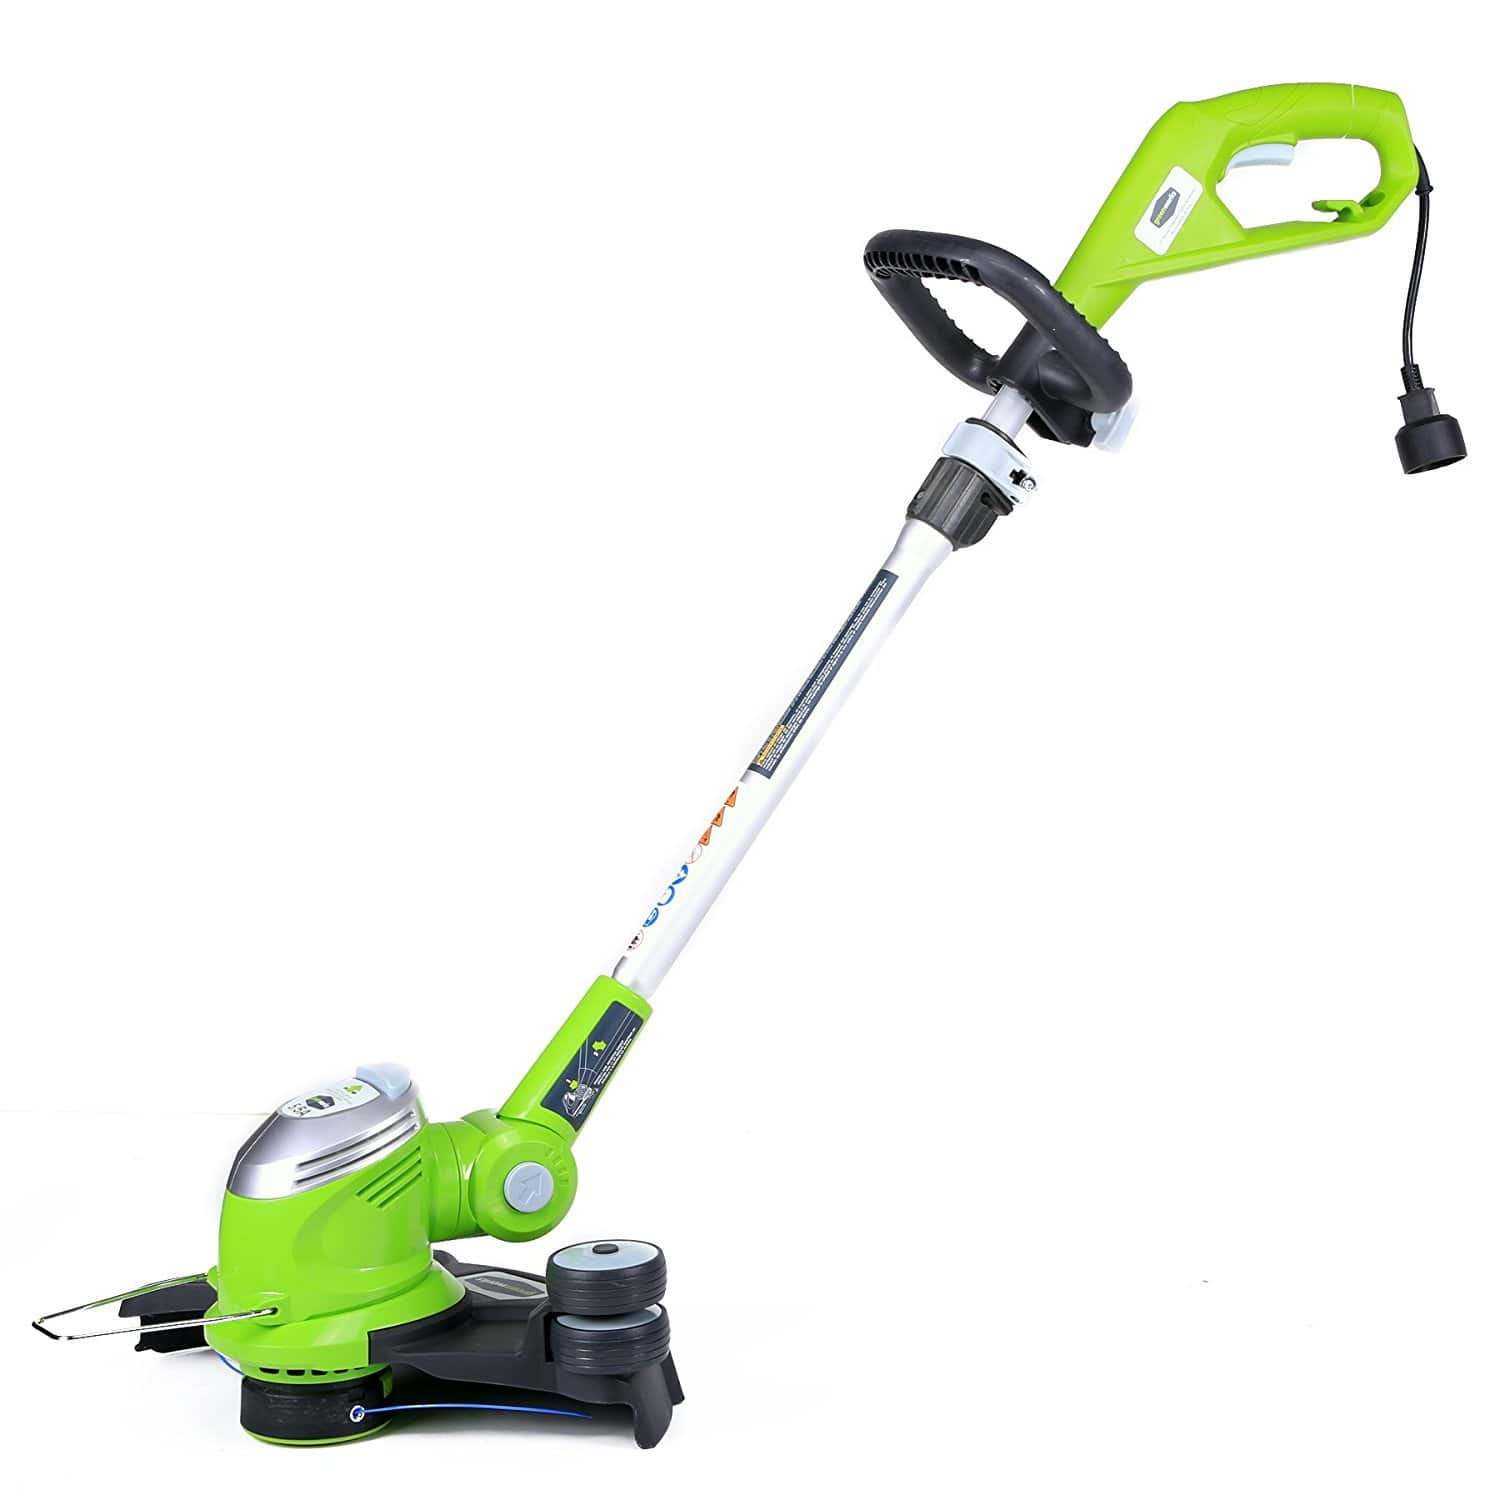 "GreenWorks 21272 5.5Amp 15-Inch Corded String Trimmer [5.5 Amp, 15"" Cutting Path] $26.24"